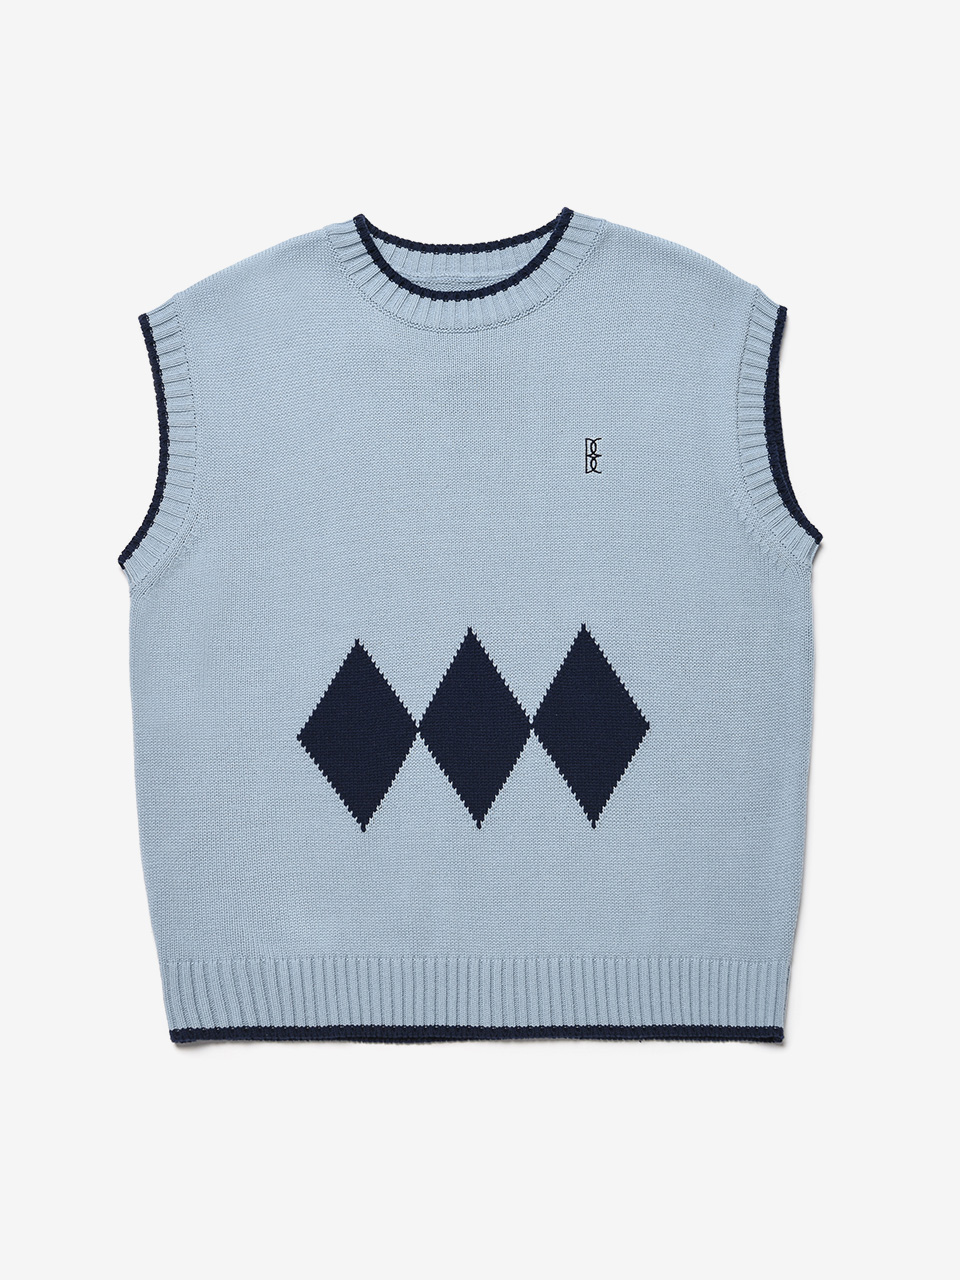 BENSIMON ARGYLE KNIT VEST (FOR MEN) - SKY BLUE